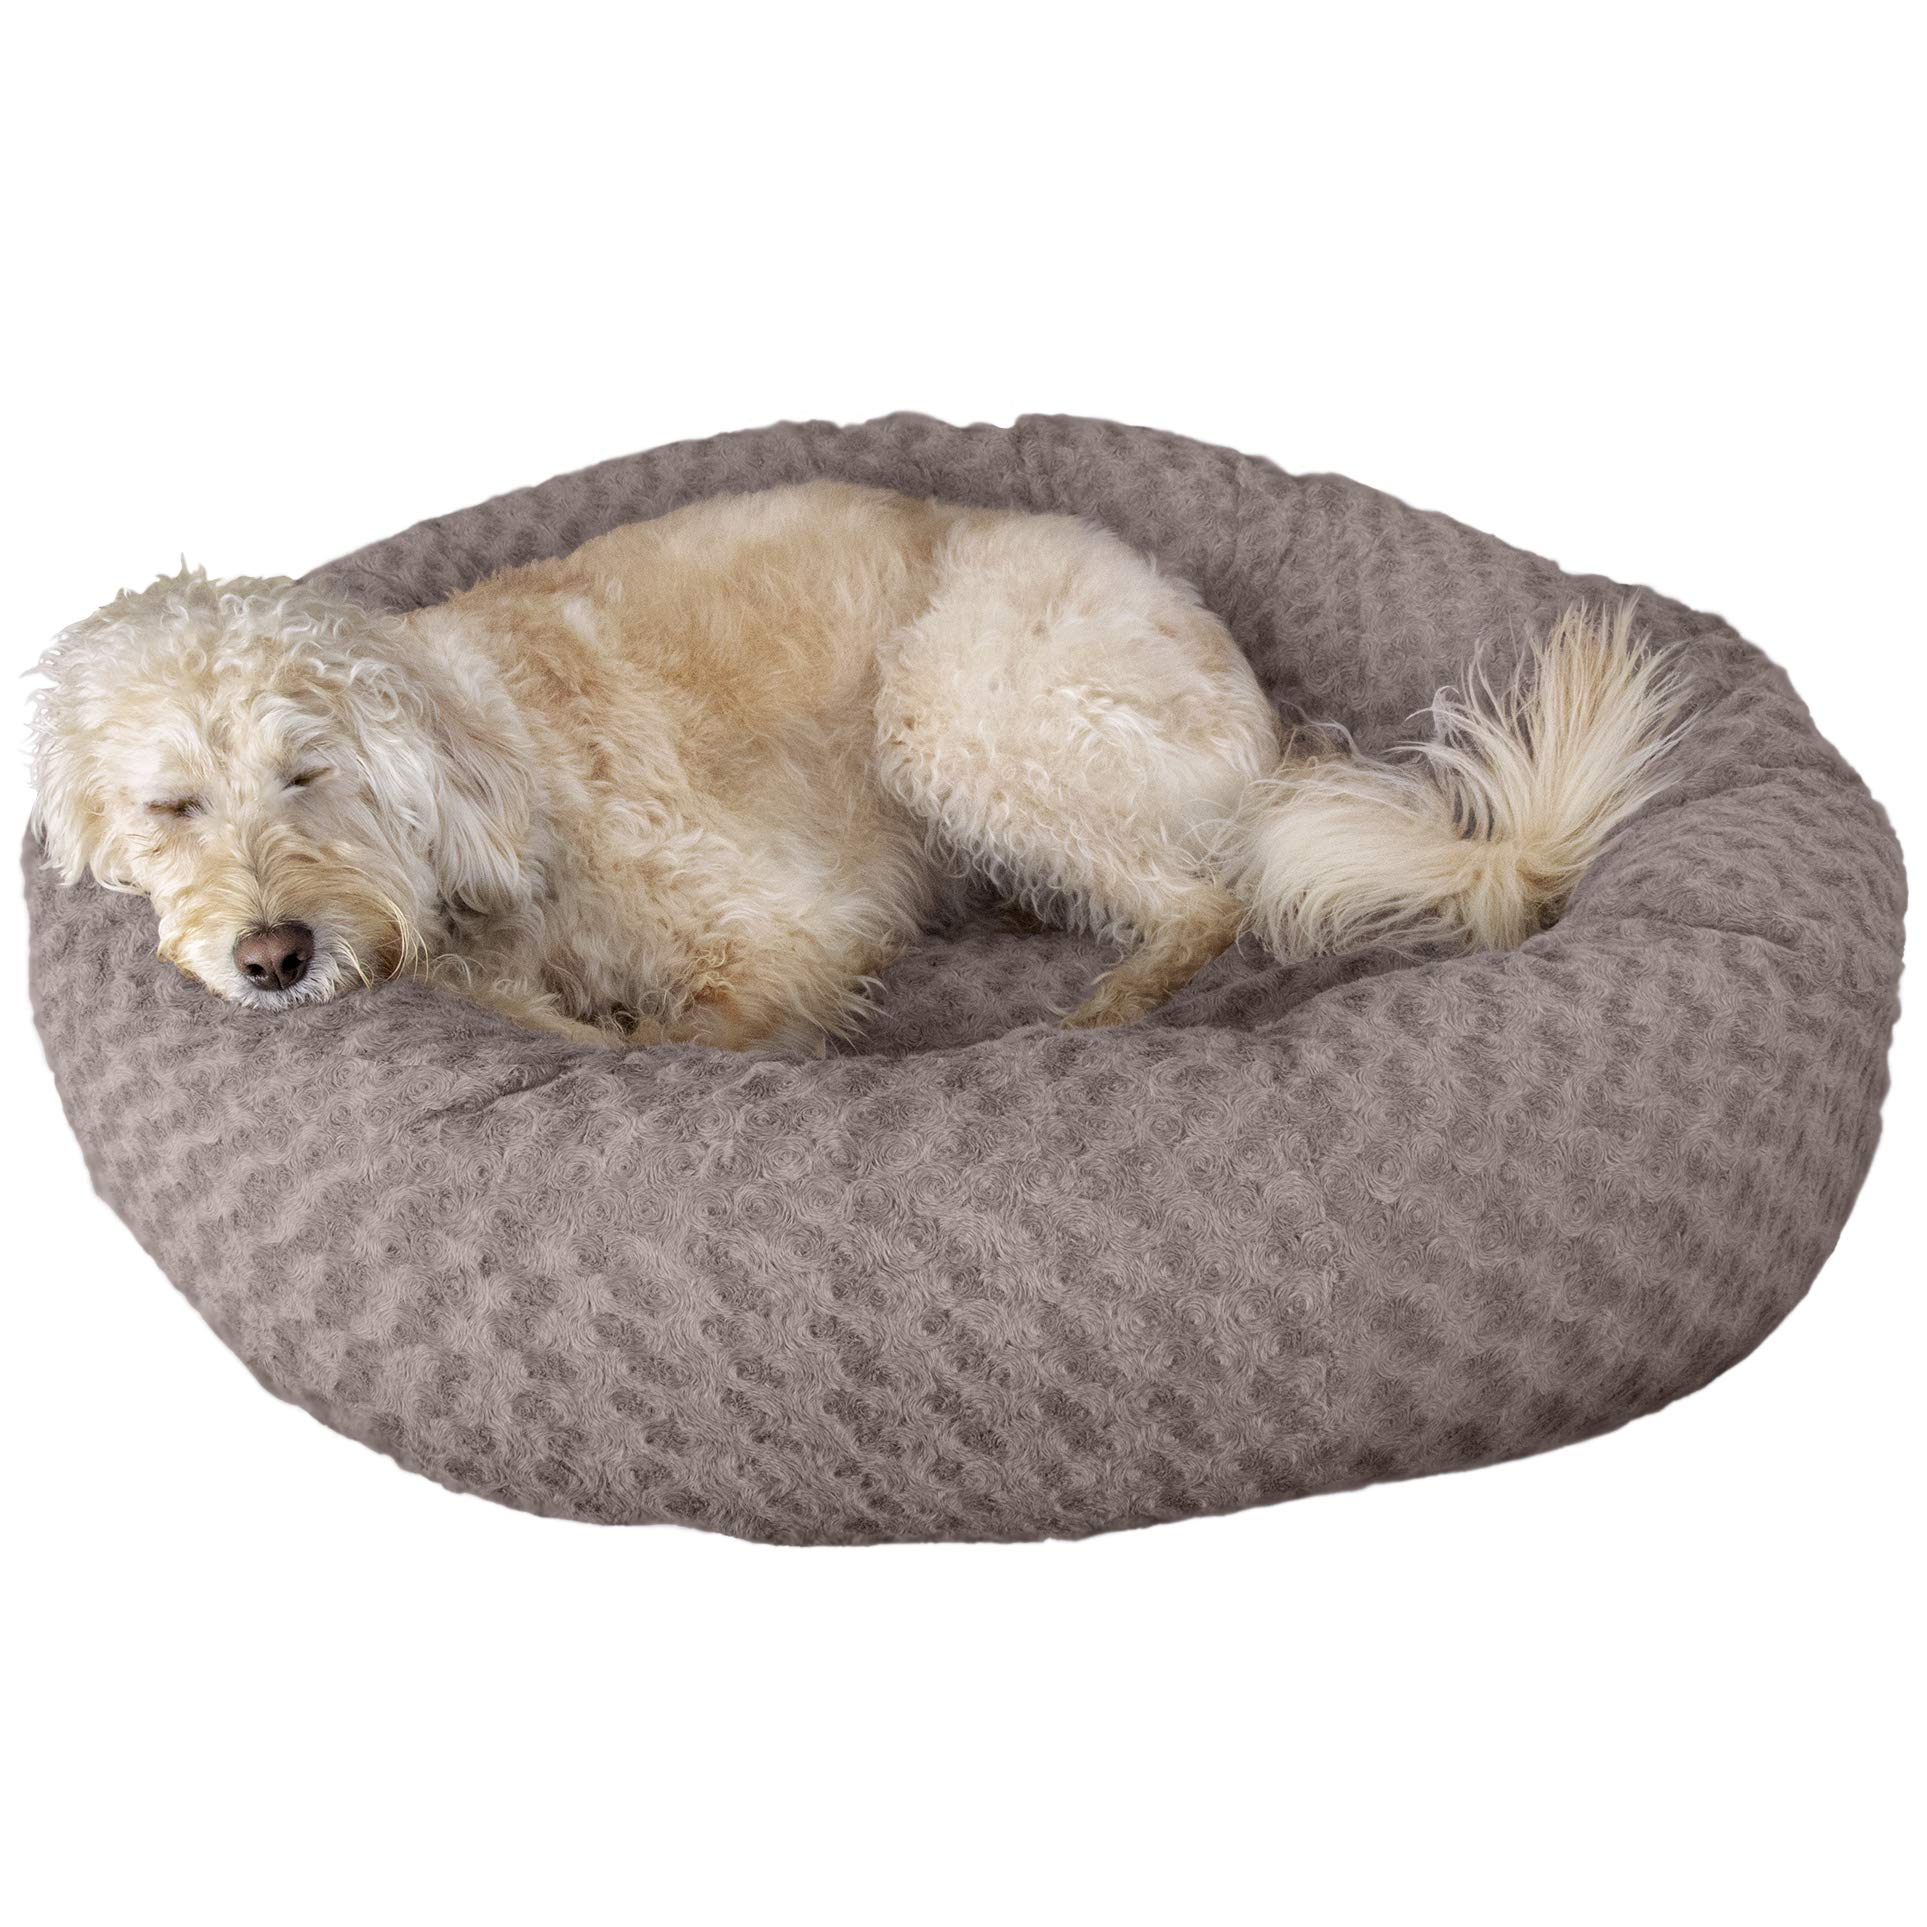 Furhaven Pet Dog Bed | Deep Dish Curly Faux Fur Refillable Ball Nest Cushion Donut Pet Bed w/ Removable Cover for Dogs & Cats, Cocoa Dust, Large by Furhaven